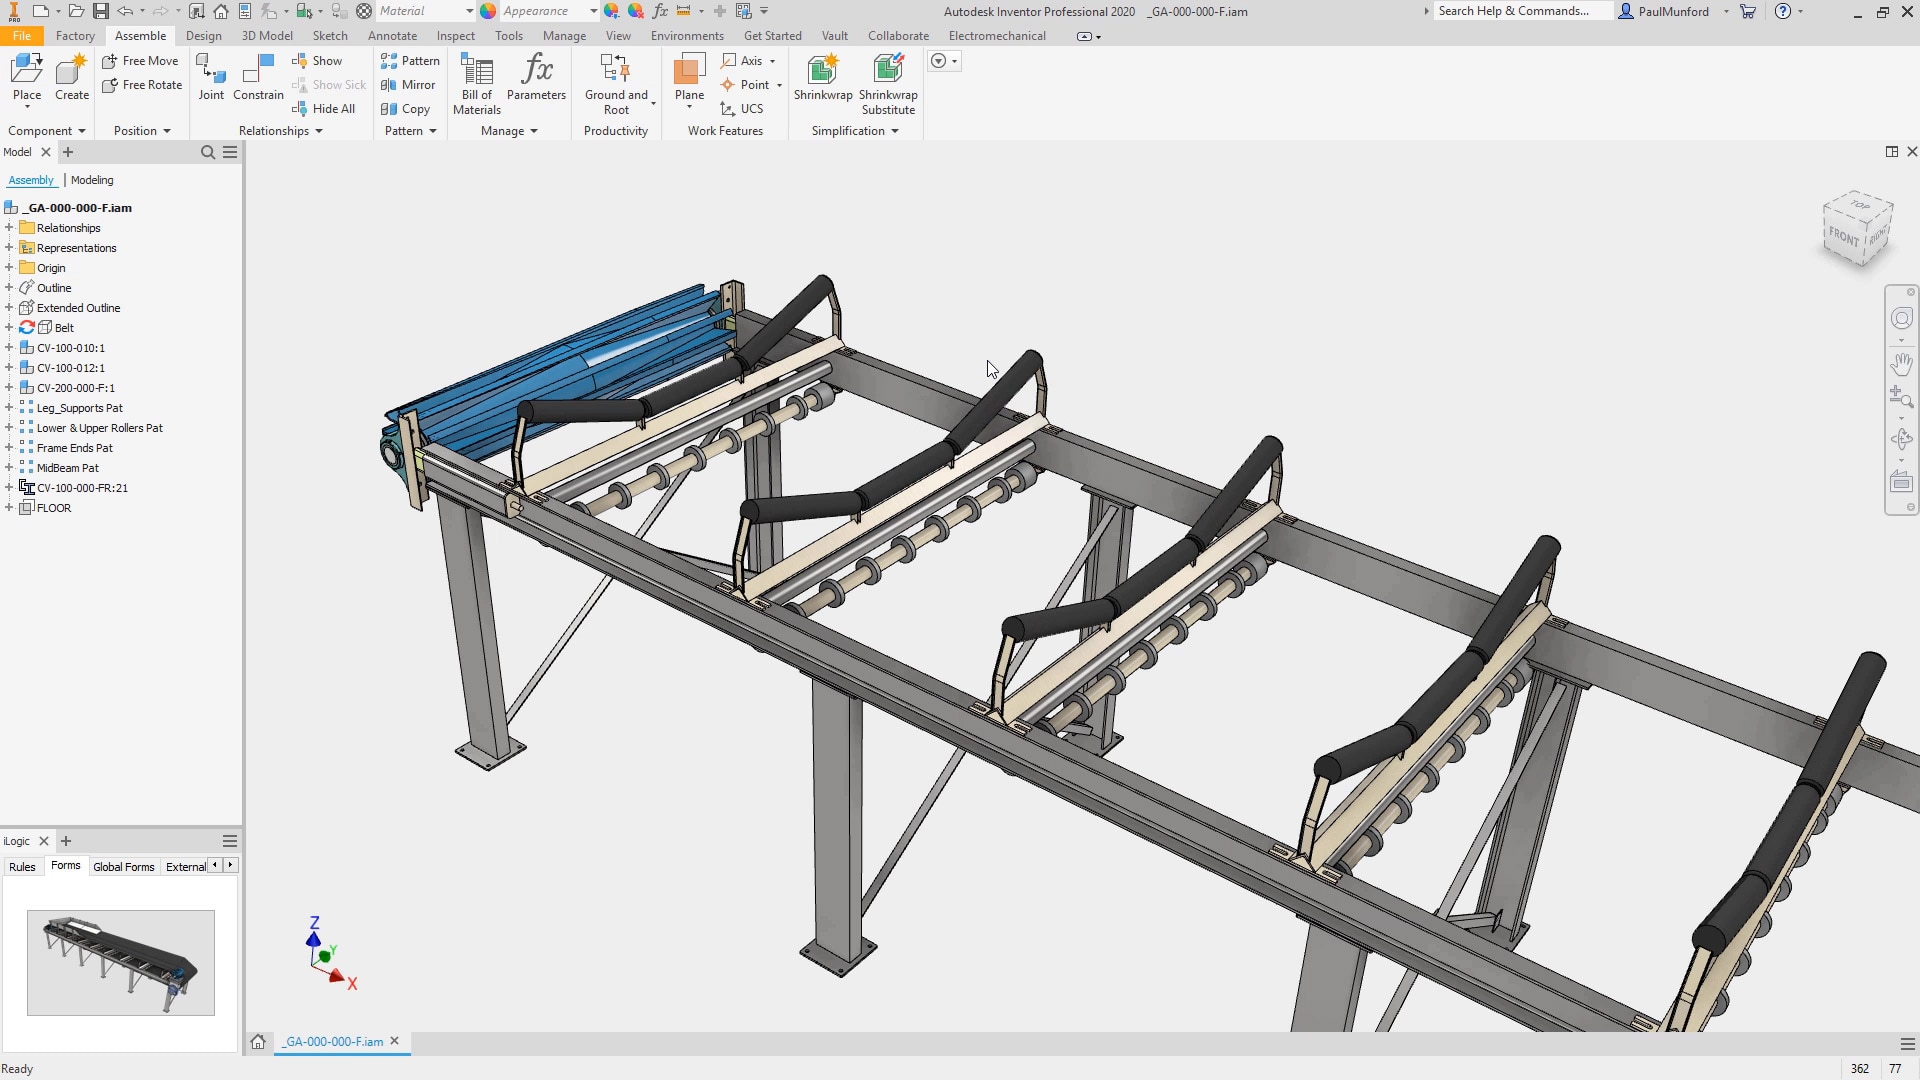 Autodesk Inventor Professional Program for Sale